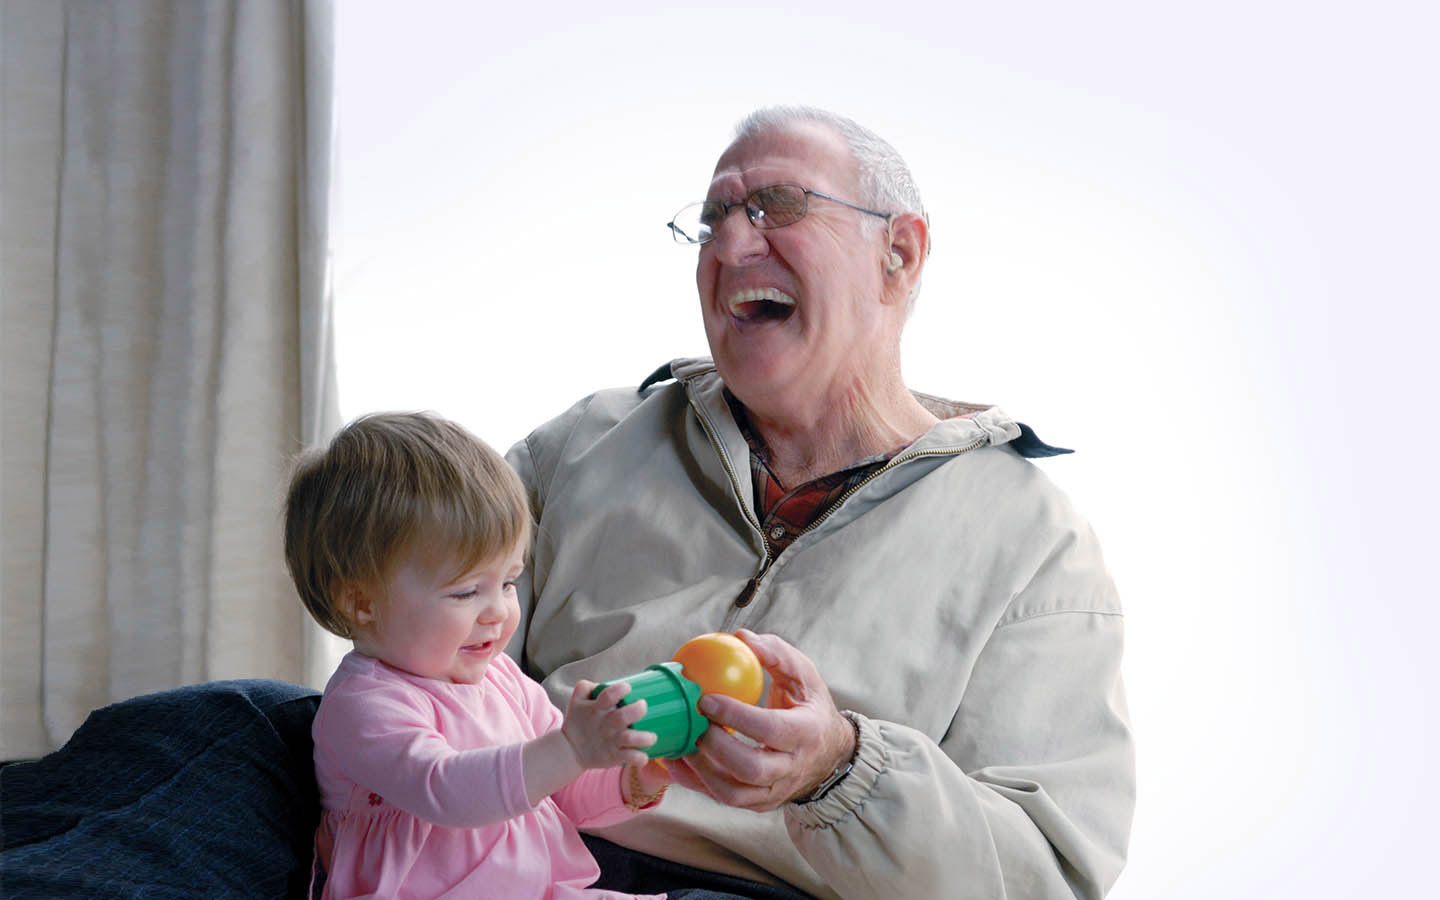 An elderly implant recipient laughs as his grandchild sits on his lap